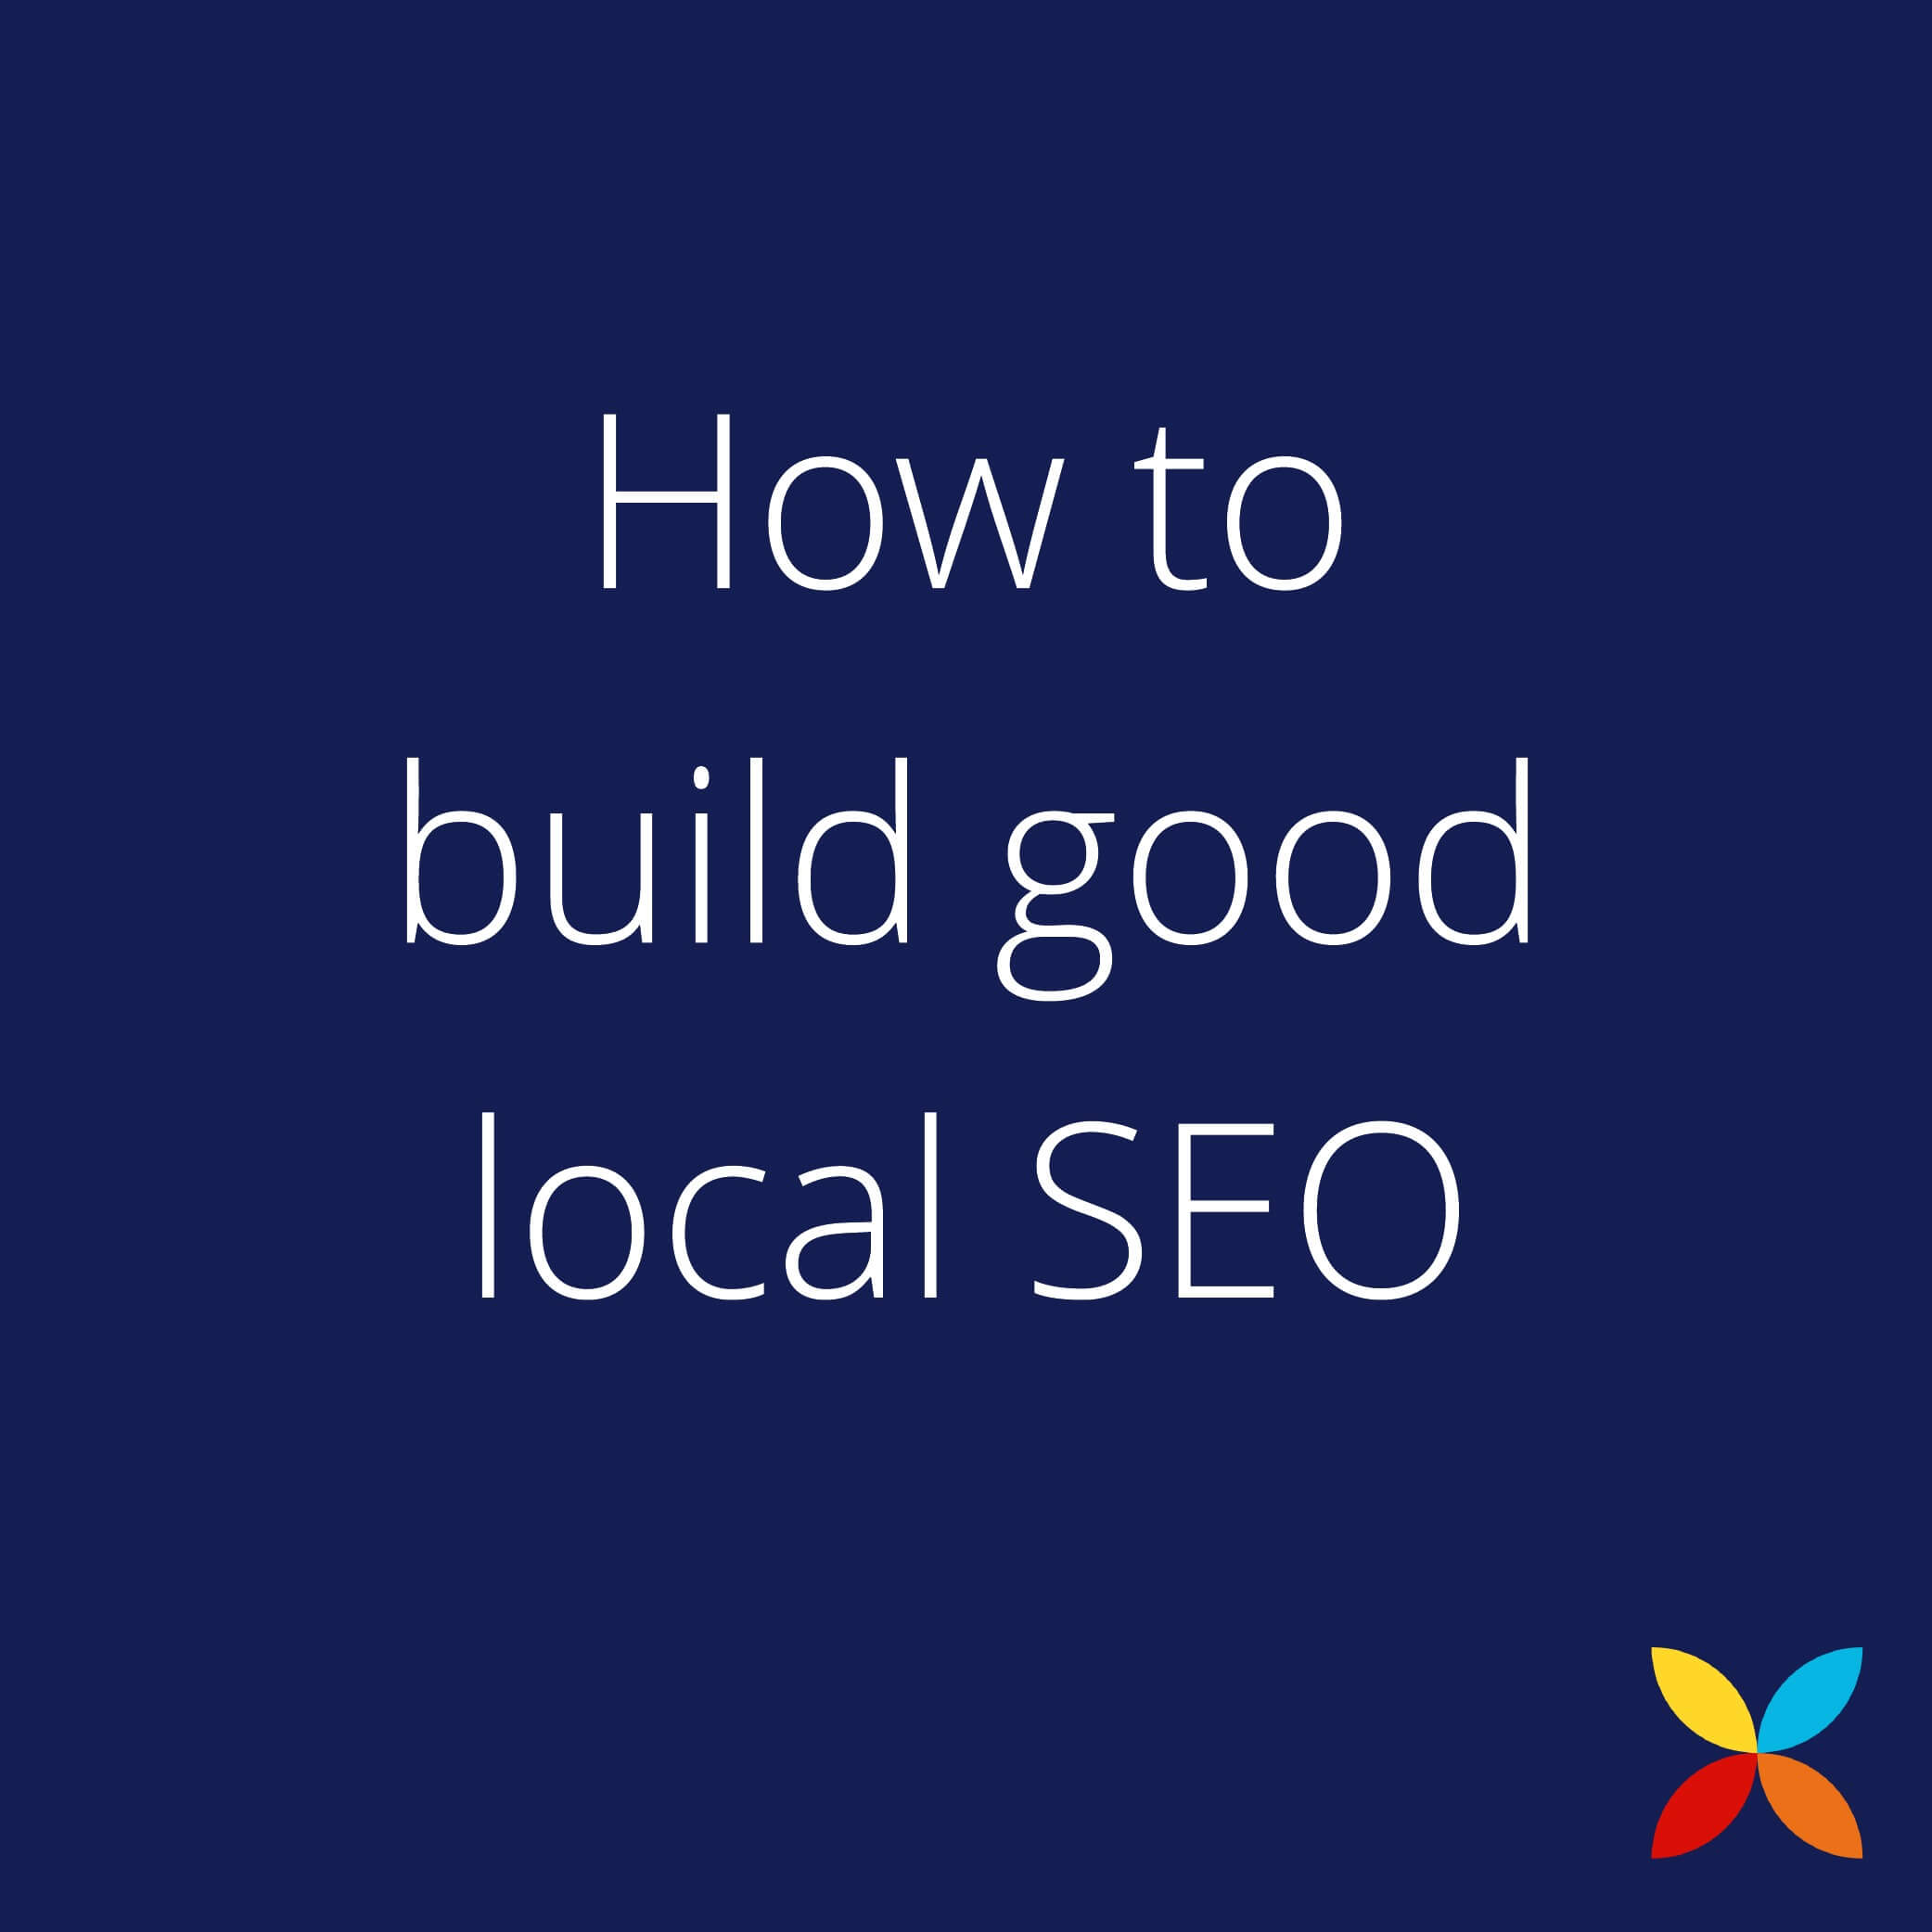 How to build good local SEO